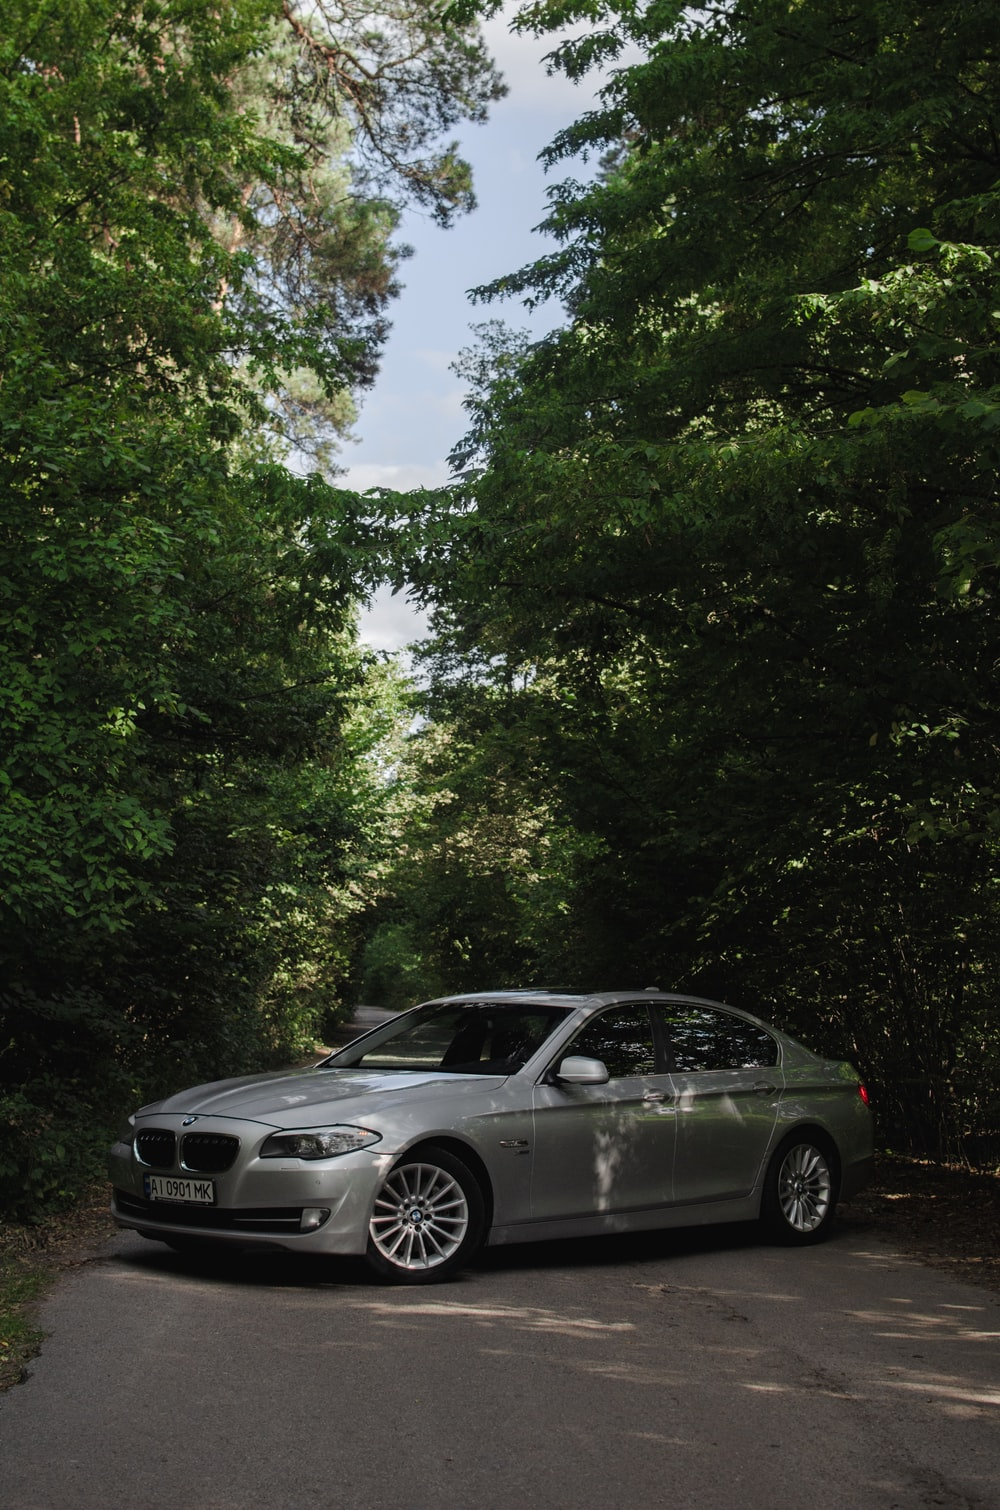 silver bmw m 3 coupe parked on forest during daytime